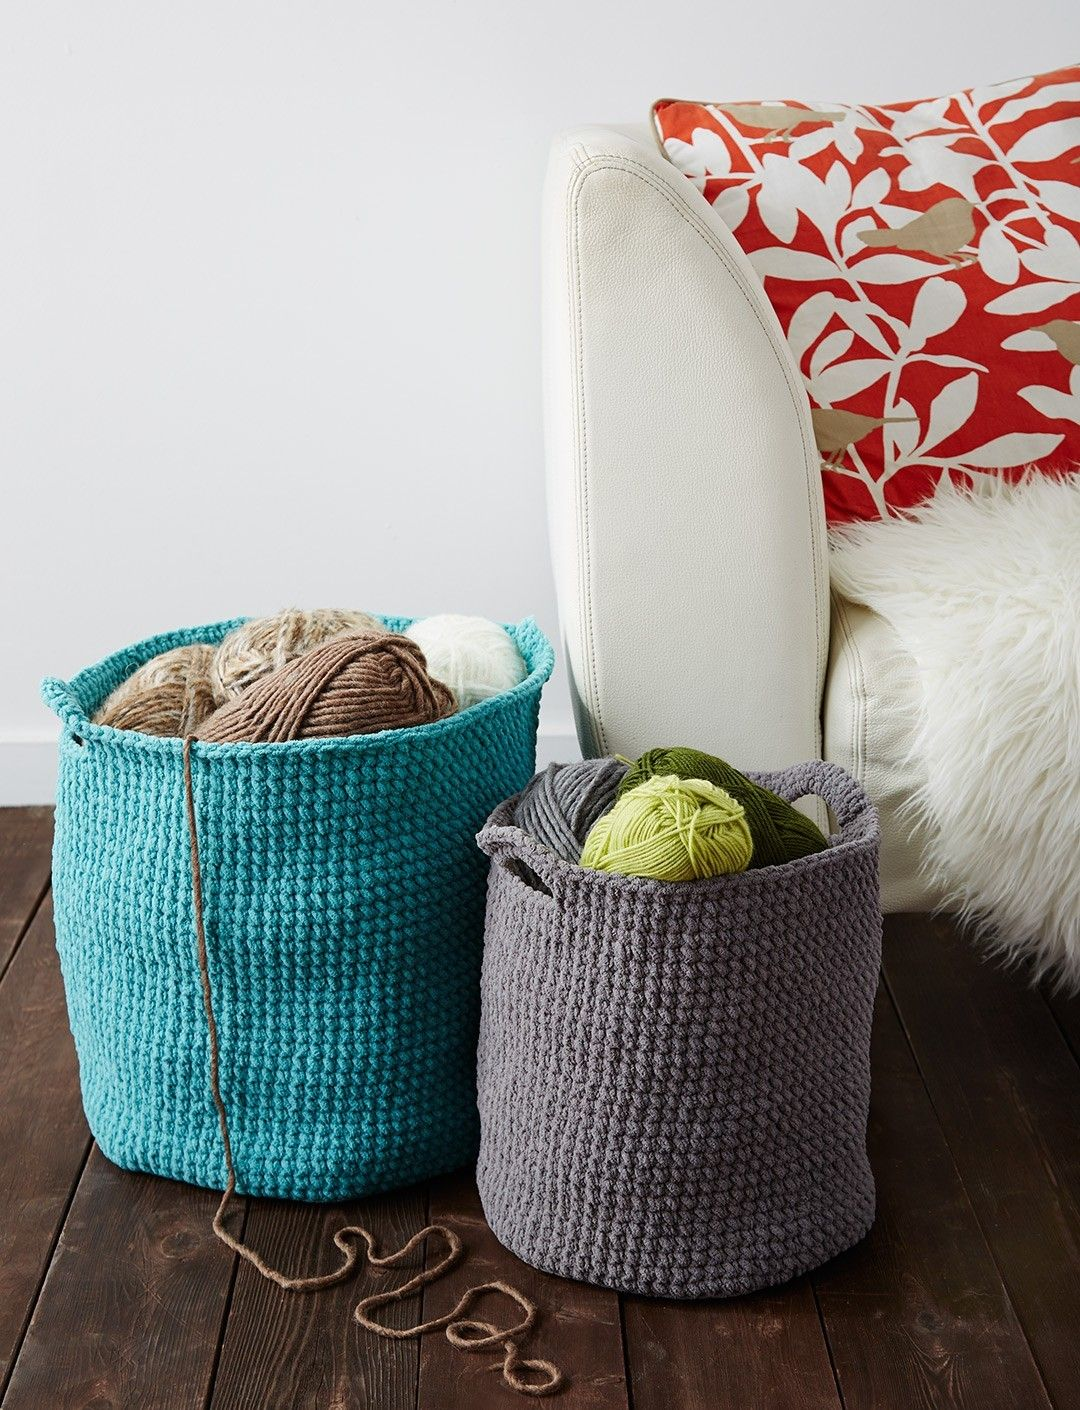 Letter Knitting Patterns : Free Knitting Pattern: Stash Basket in Bernat Blanket http://www.loveknitting...